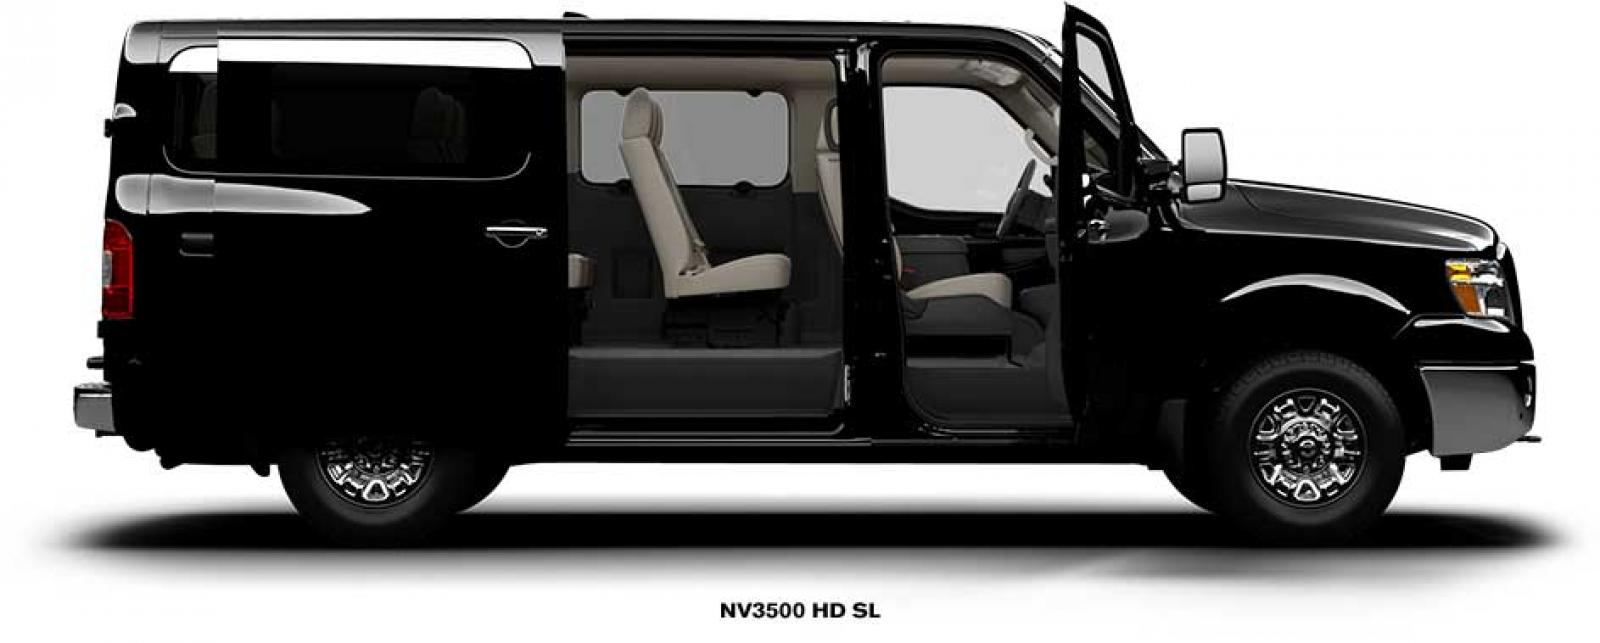 2014 nissan nv passenger information and photos zombiedrive. Black Bedroom Furniture Sets. Home Design Ideas